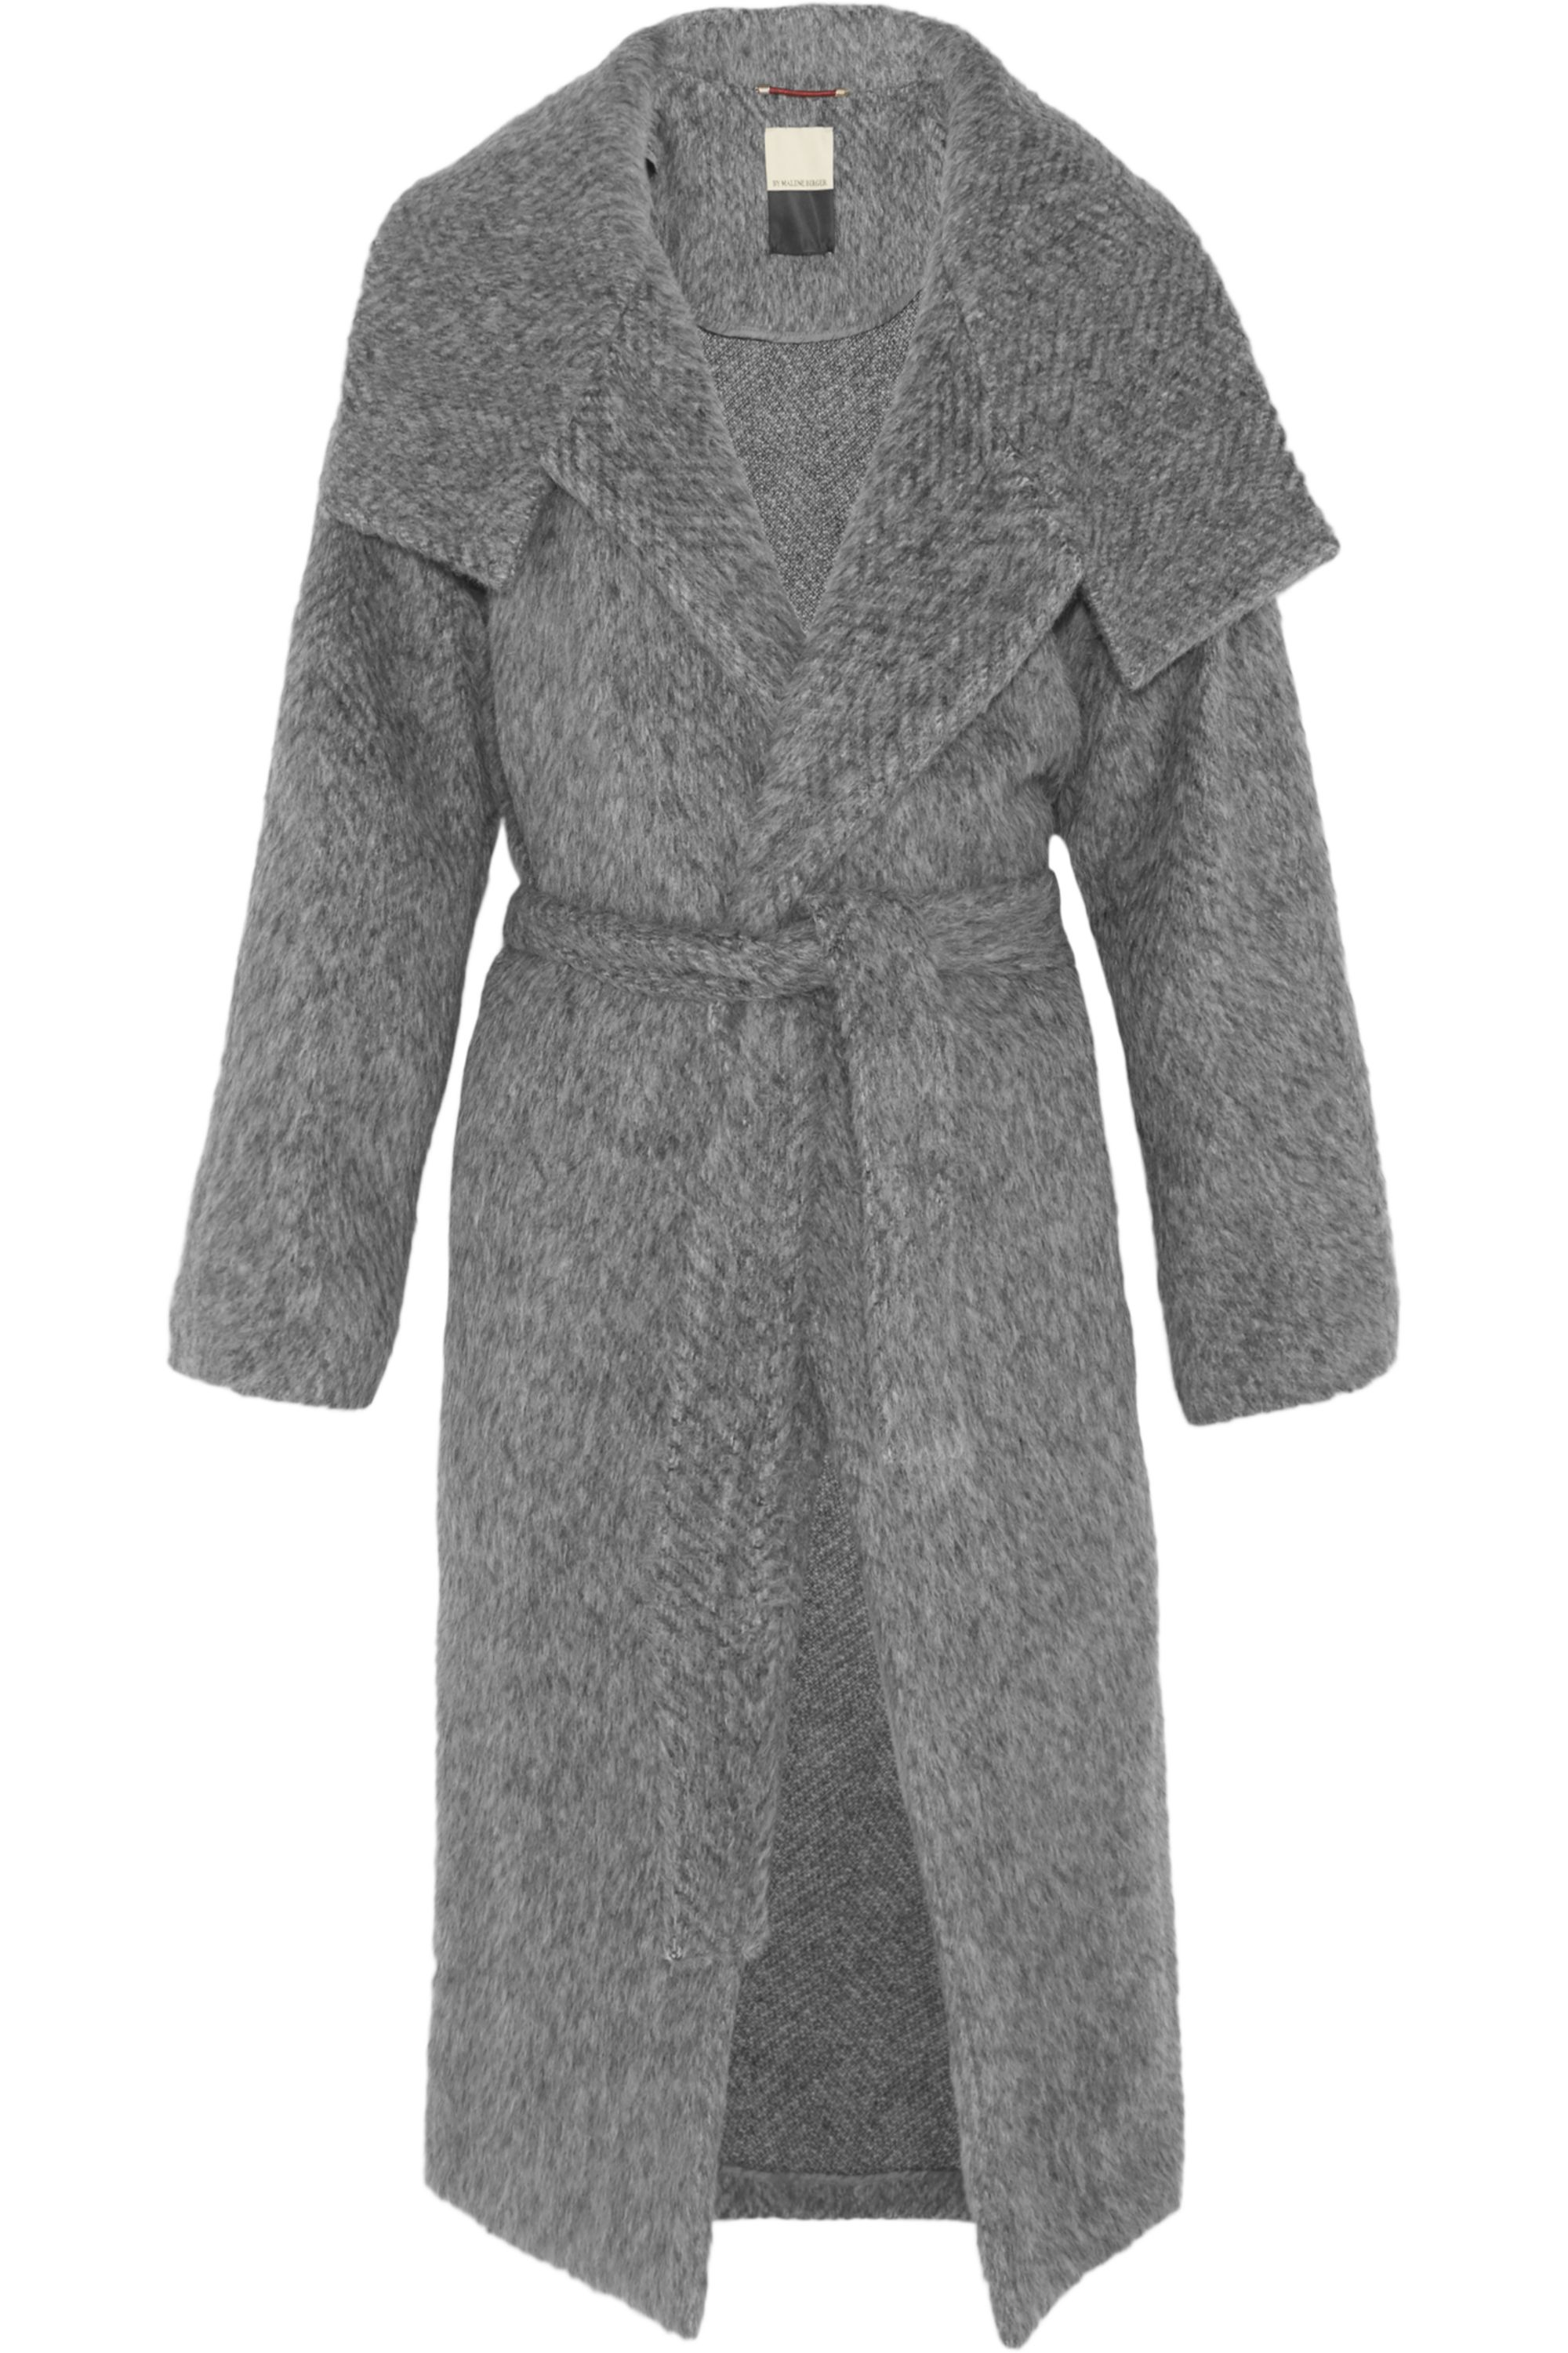 By Malene Birger Eclipse belted brushed woven coat